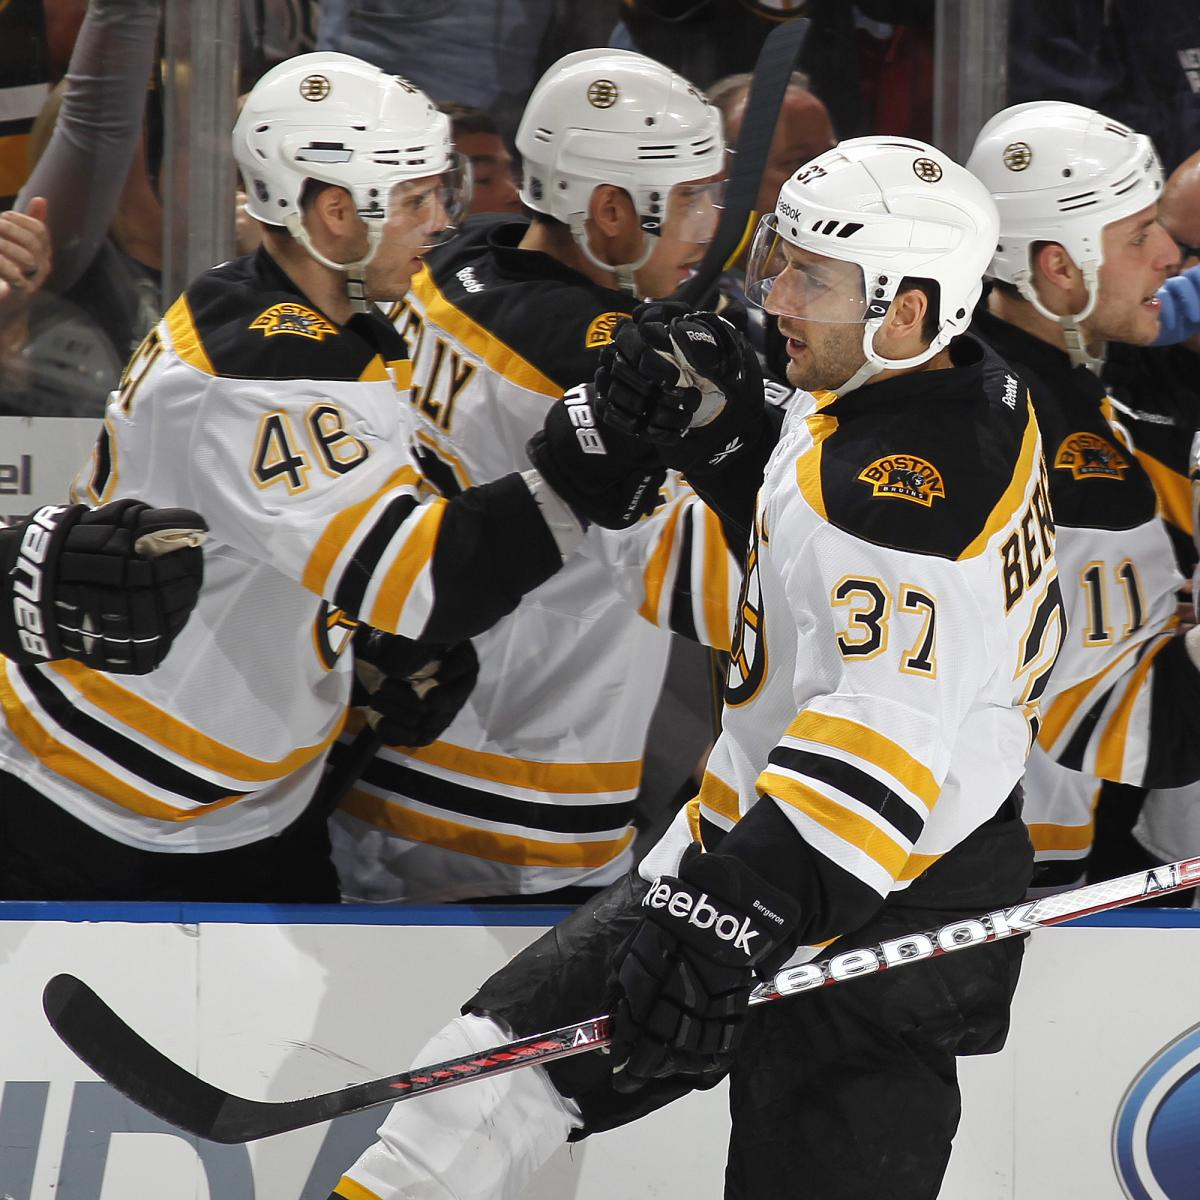 3 Reasons Why The Boston Bruins Are The Best Team In The